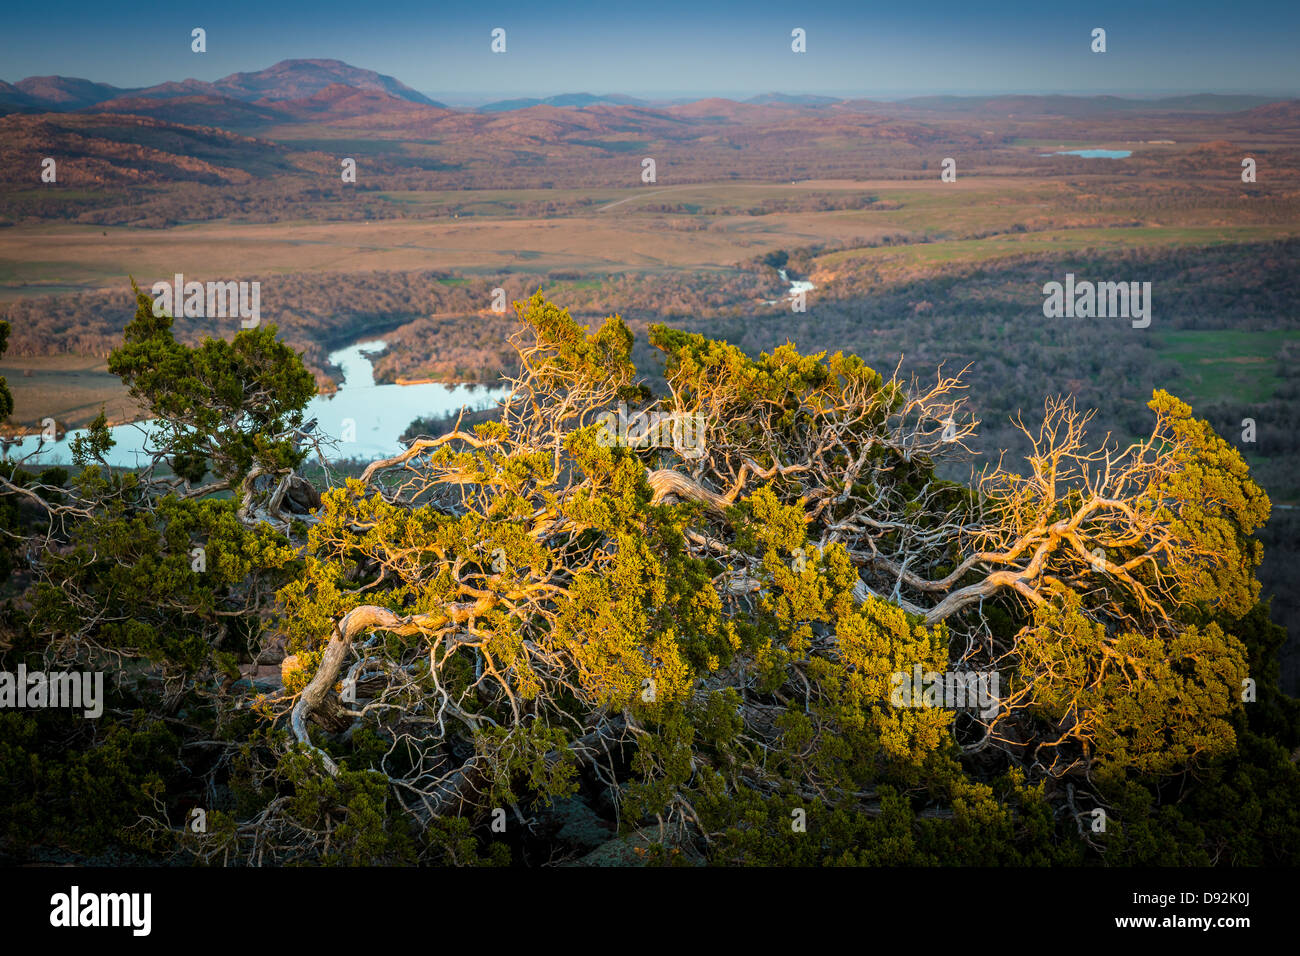 View from Elk Mountain in Wichita Mountains Wildlife Refuge, Oklahoma - Stock Image